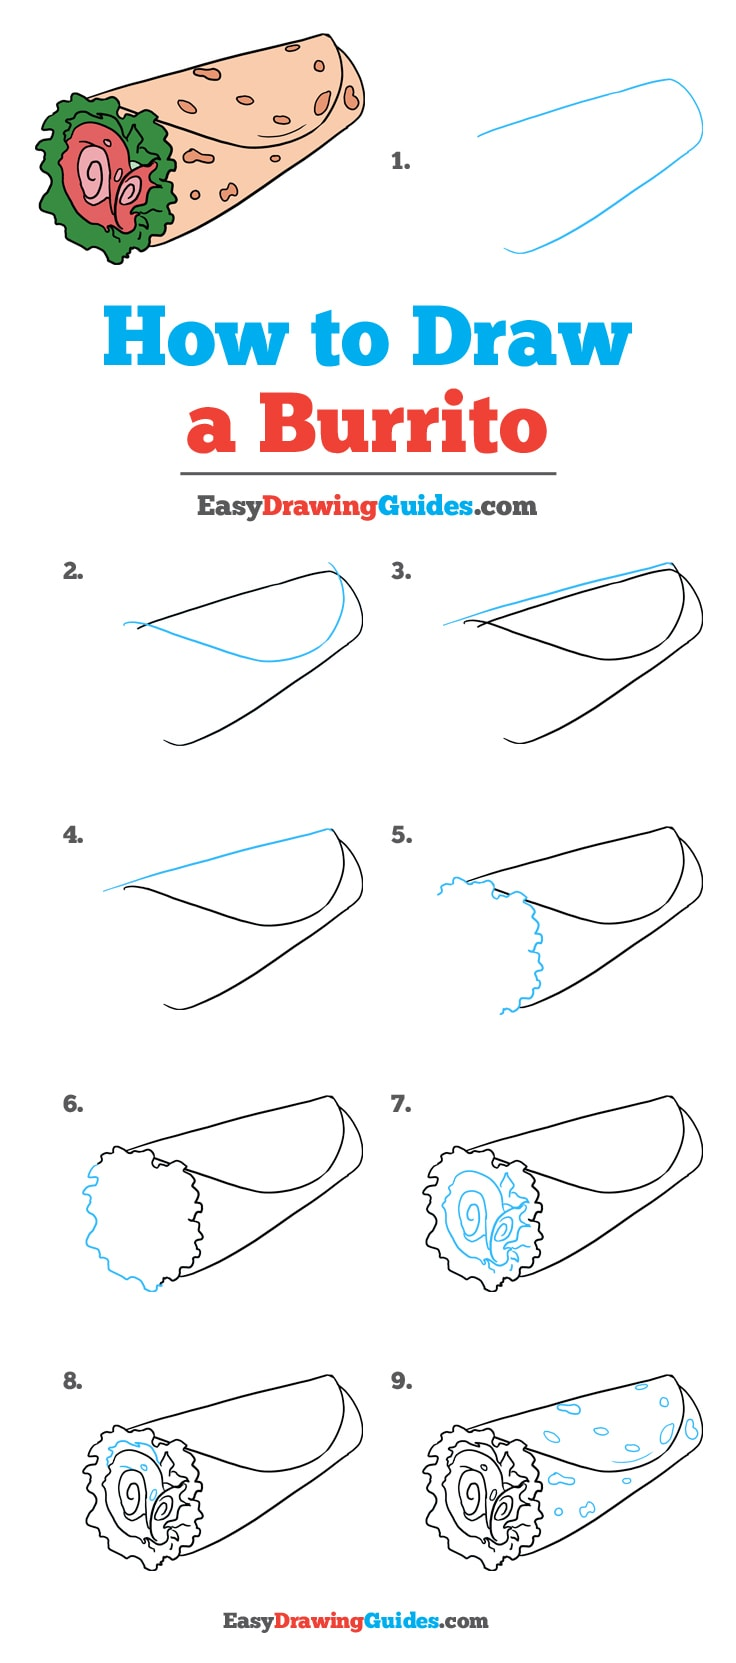 How to Draw Burrito